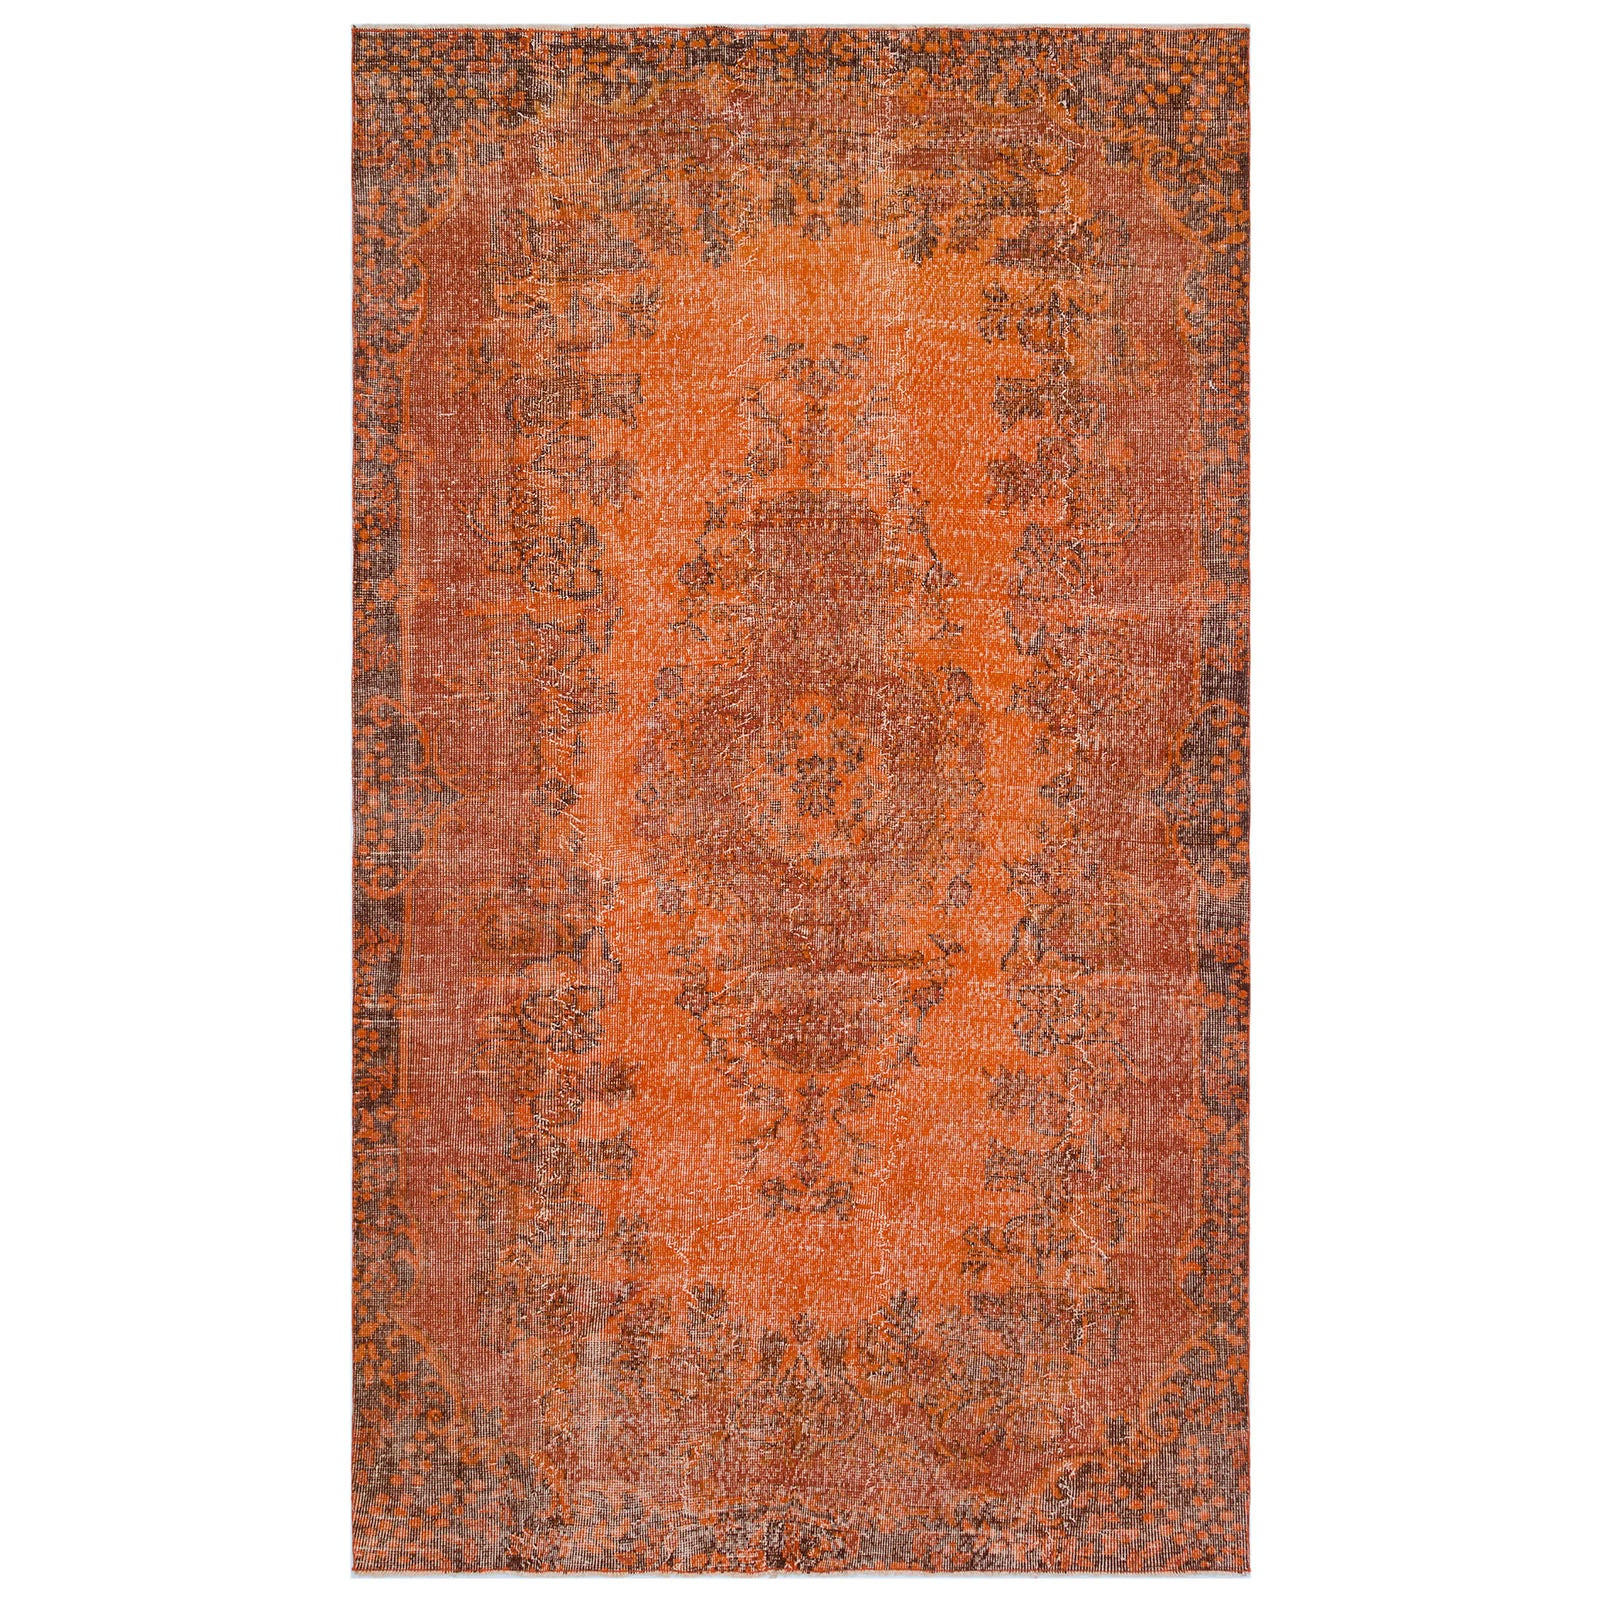 Hali 162X273 CM Bursa Handmade over dyed 1365